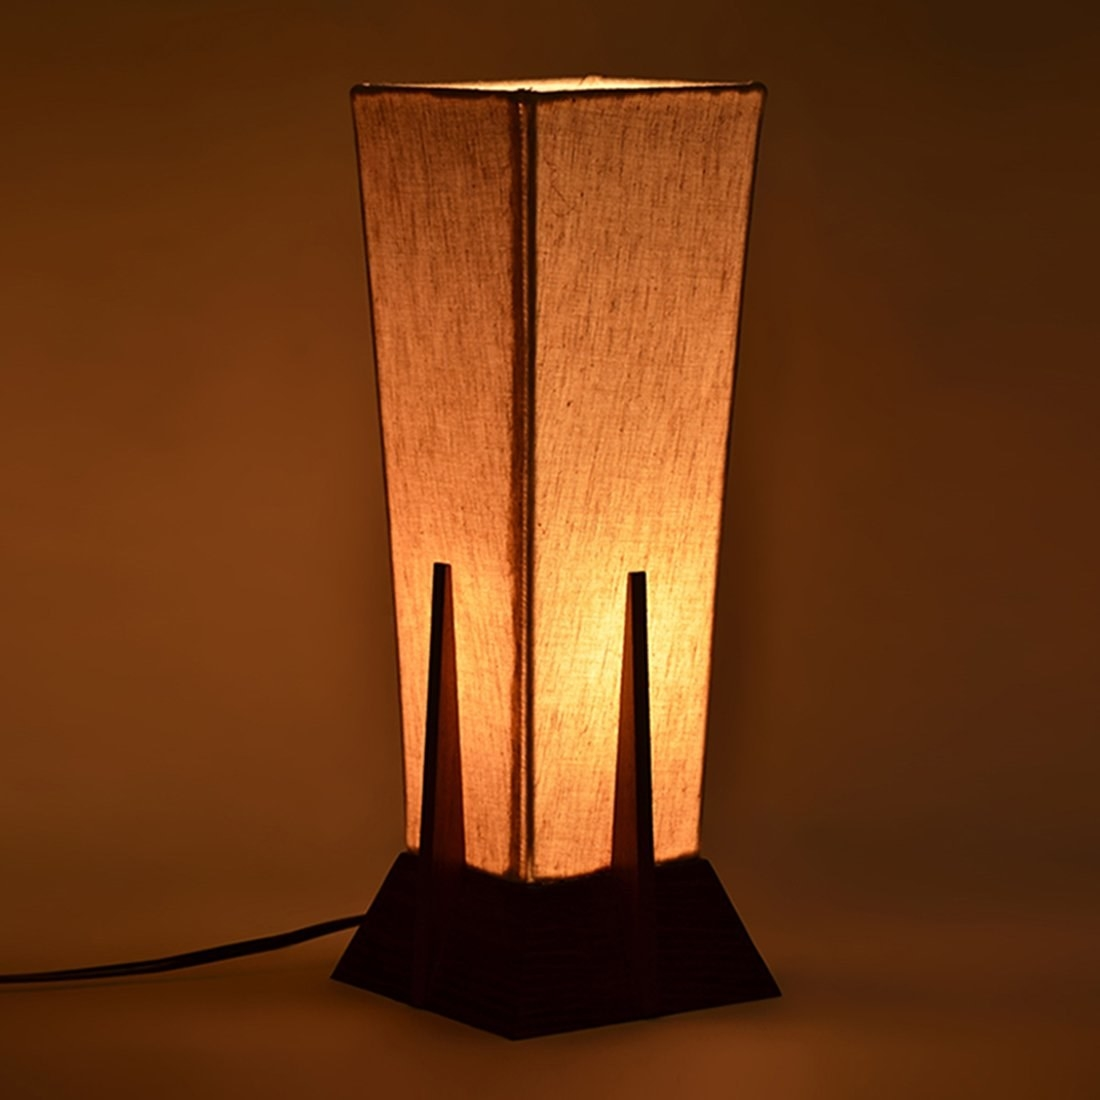 A Sheesham lamp on a table